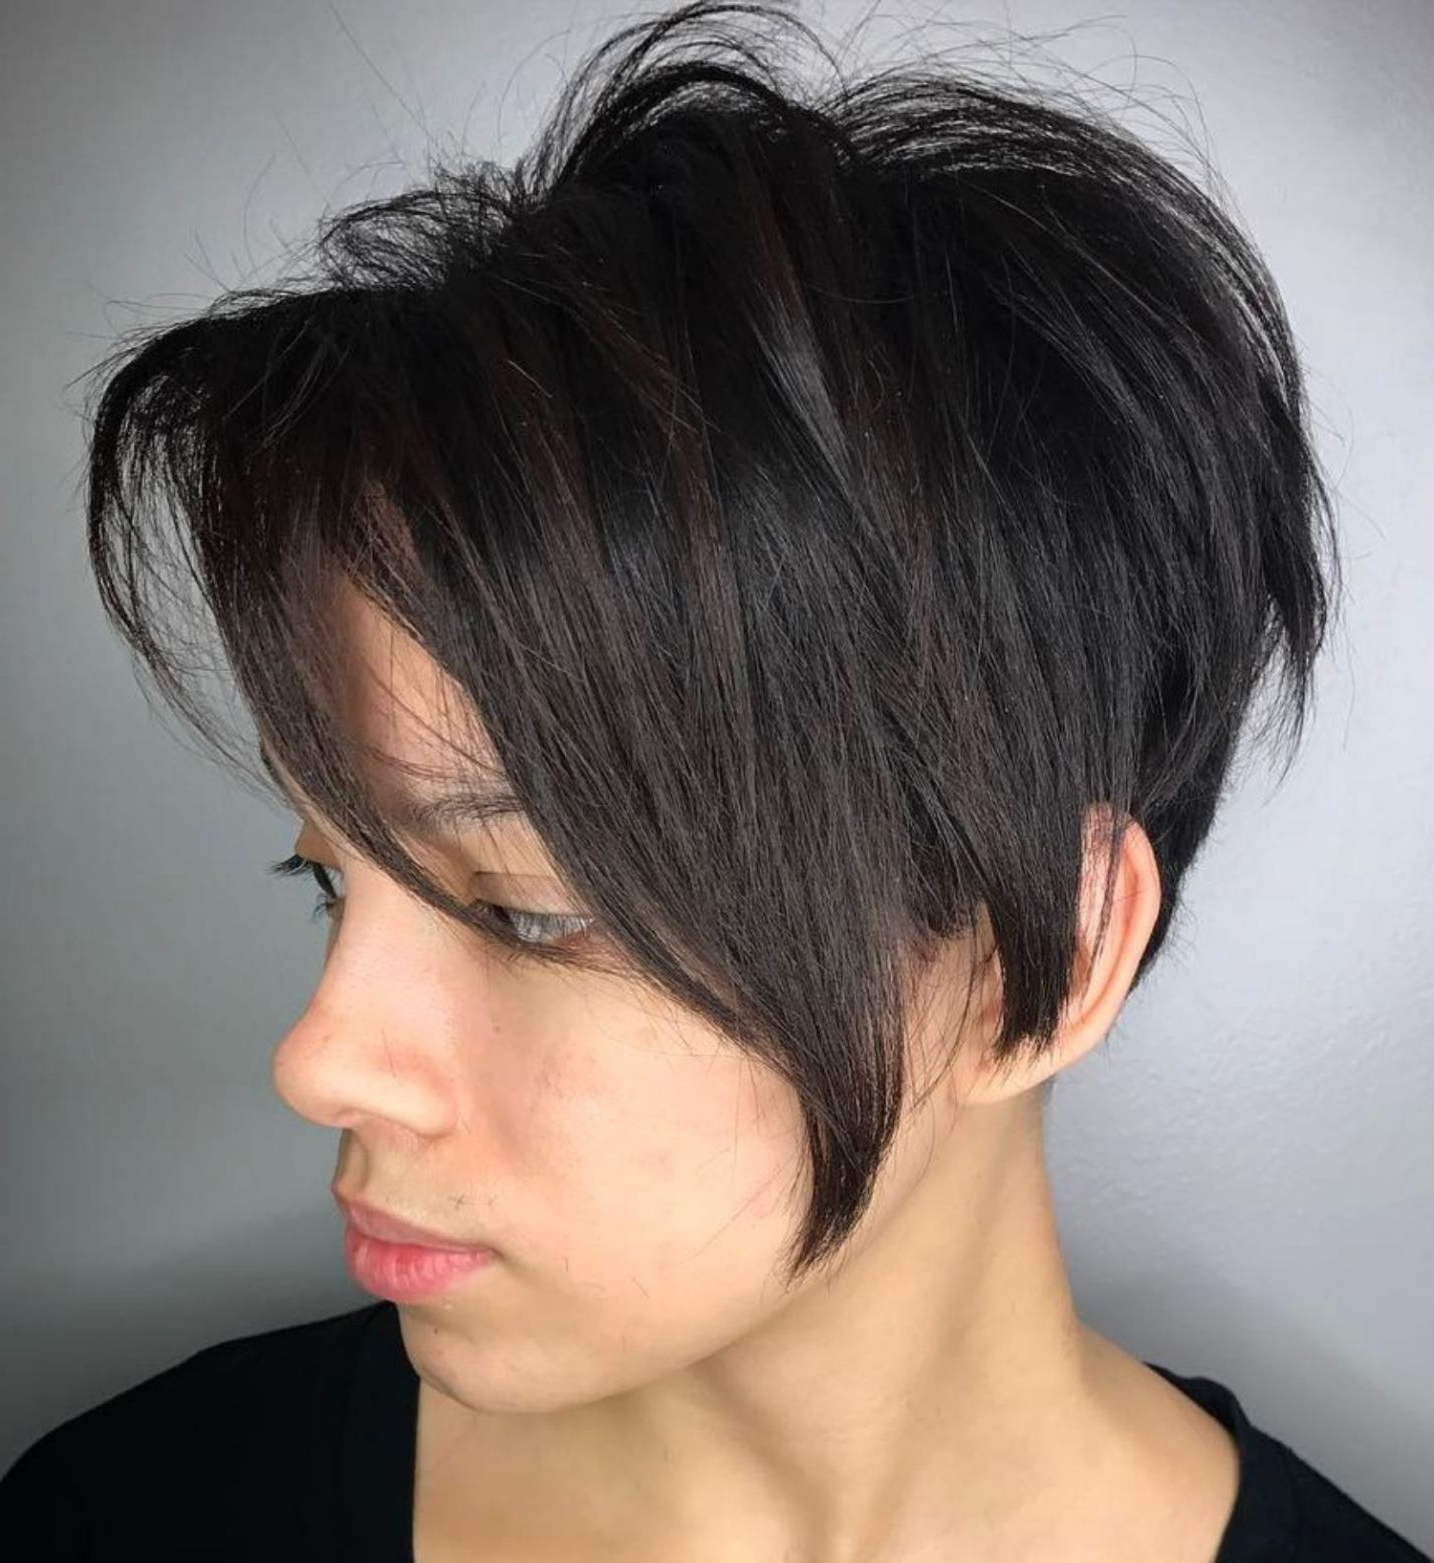 Pixie Haircuts For Thick Hair – 50 Ideas Of Ideal Short Haircuts With Regard To Pixie Bob Hairstyles With Nape Undercut (View 5 of 20)